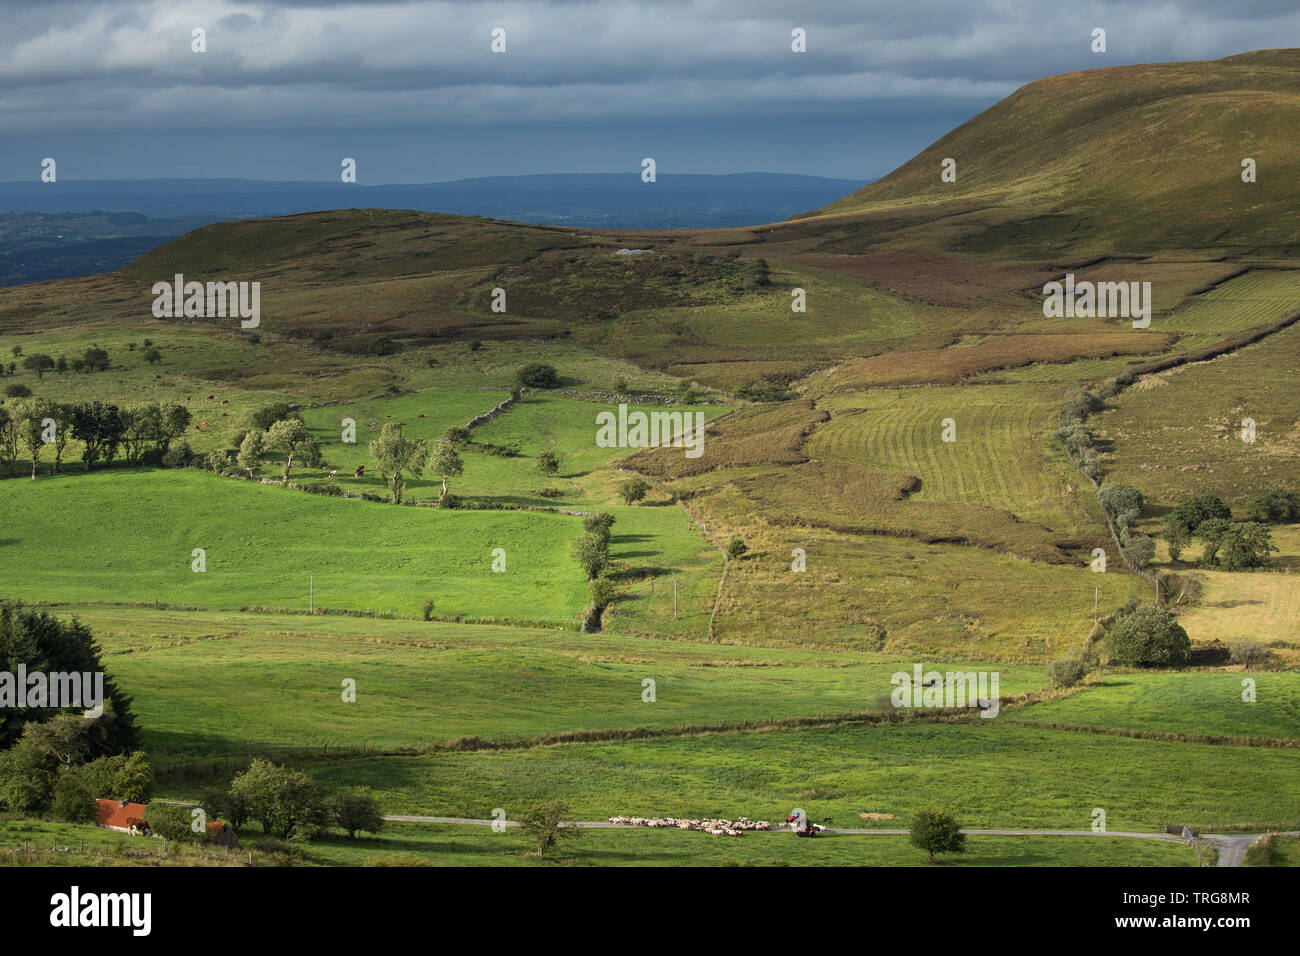 Sheep being rounded up on Gortalughany, Co Fermanagh, Northern Ireland, UK - Stock Image